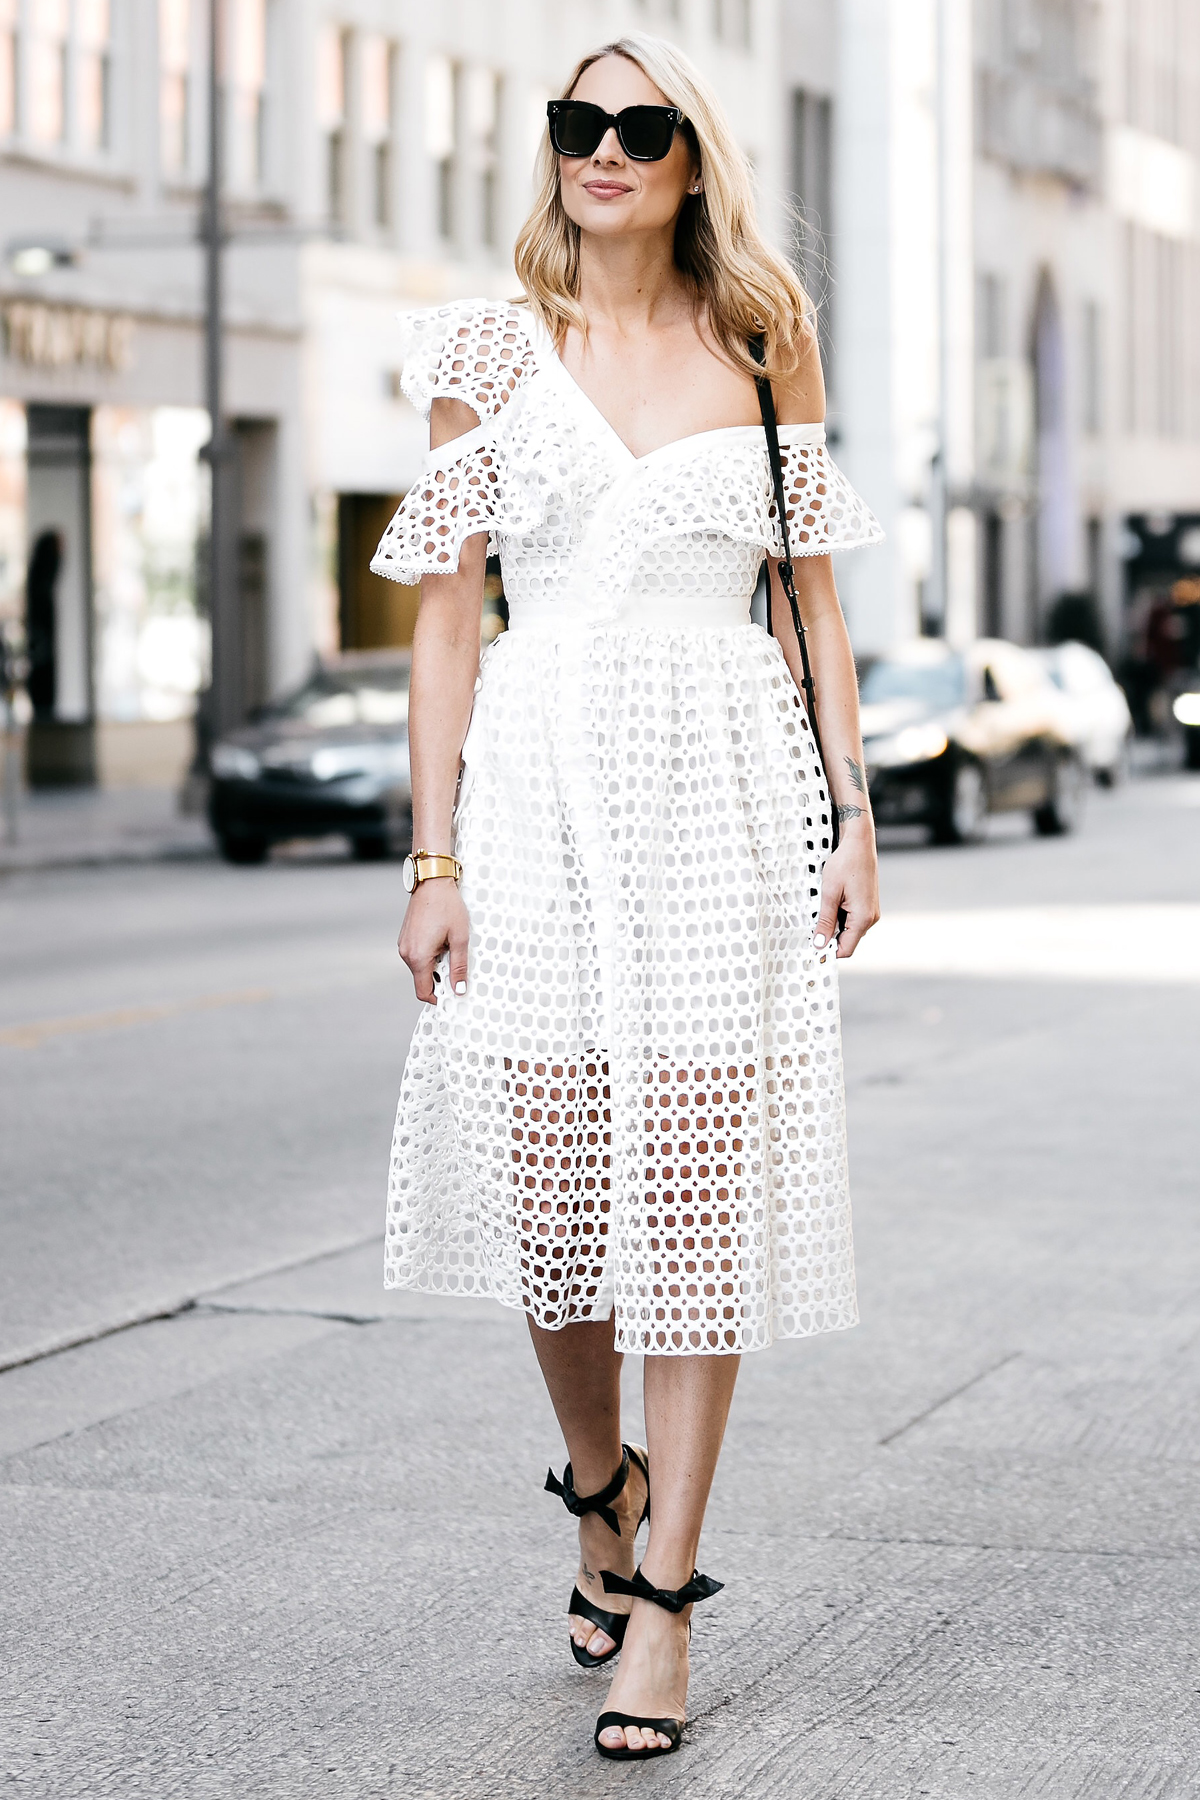 Fashion Jackson, Dallas Blogger, Fashion Blogger, Street Style, Self-Portrait White Lace Ruffle Sleeve Midi Dress, Chloe Faye Black Handbag, Black Ankle Strap Bow Heels